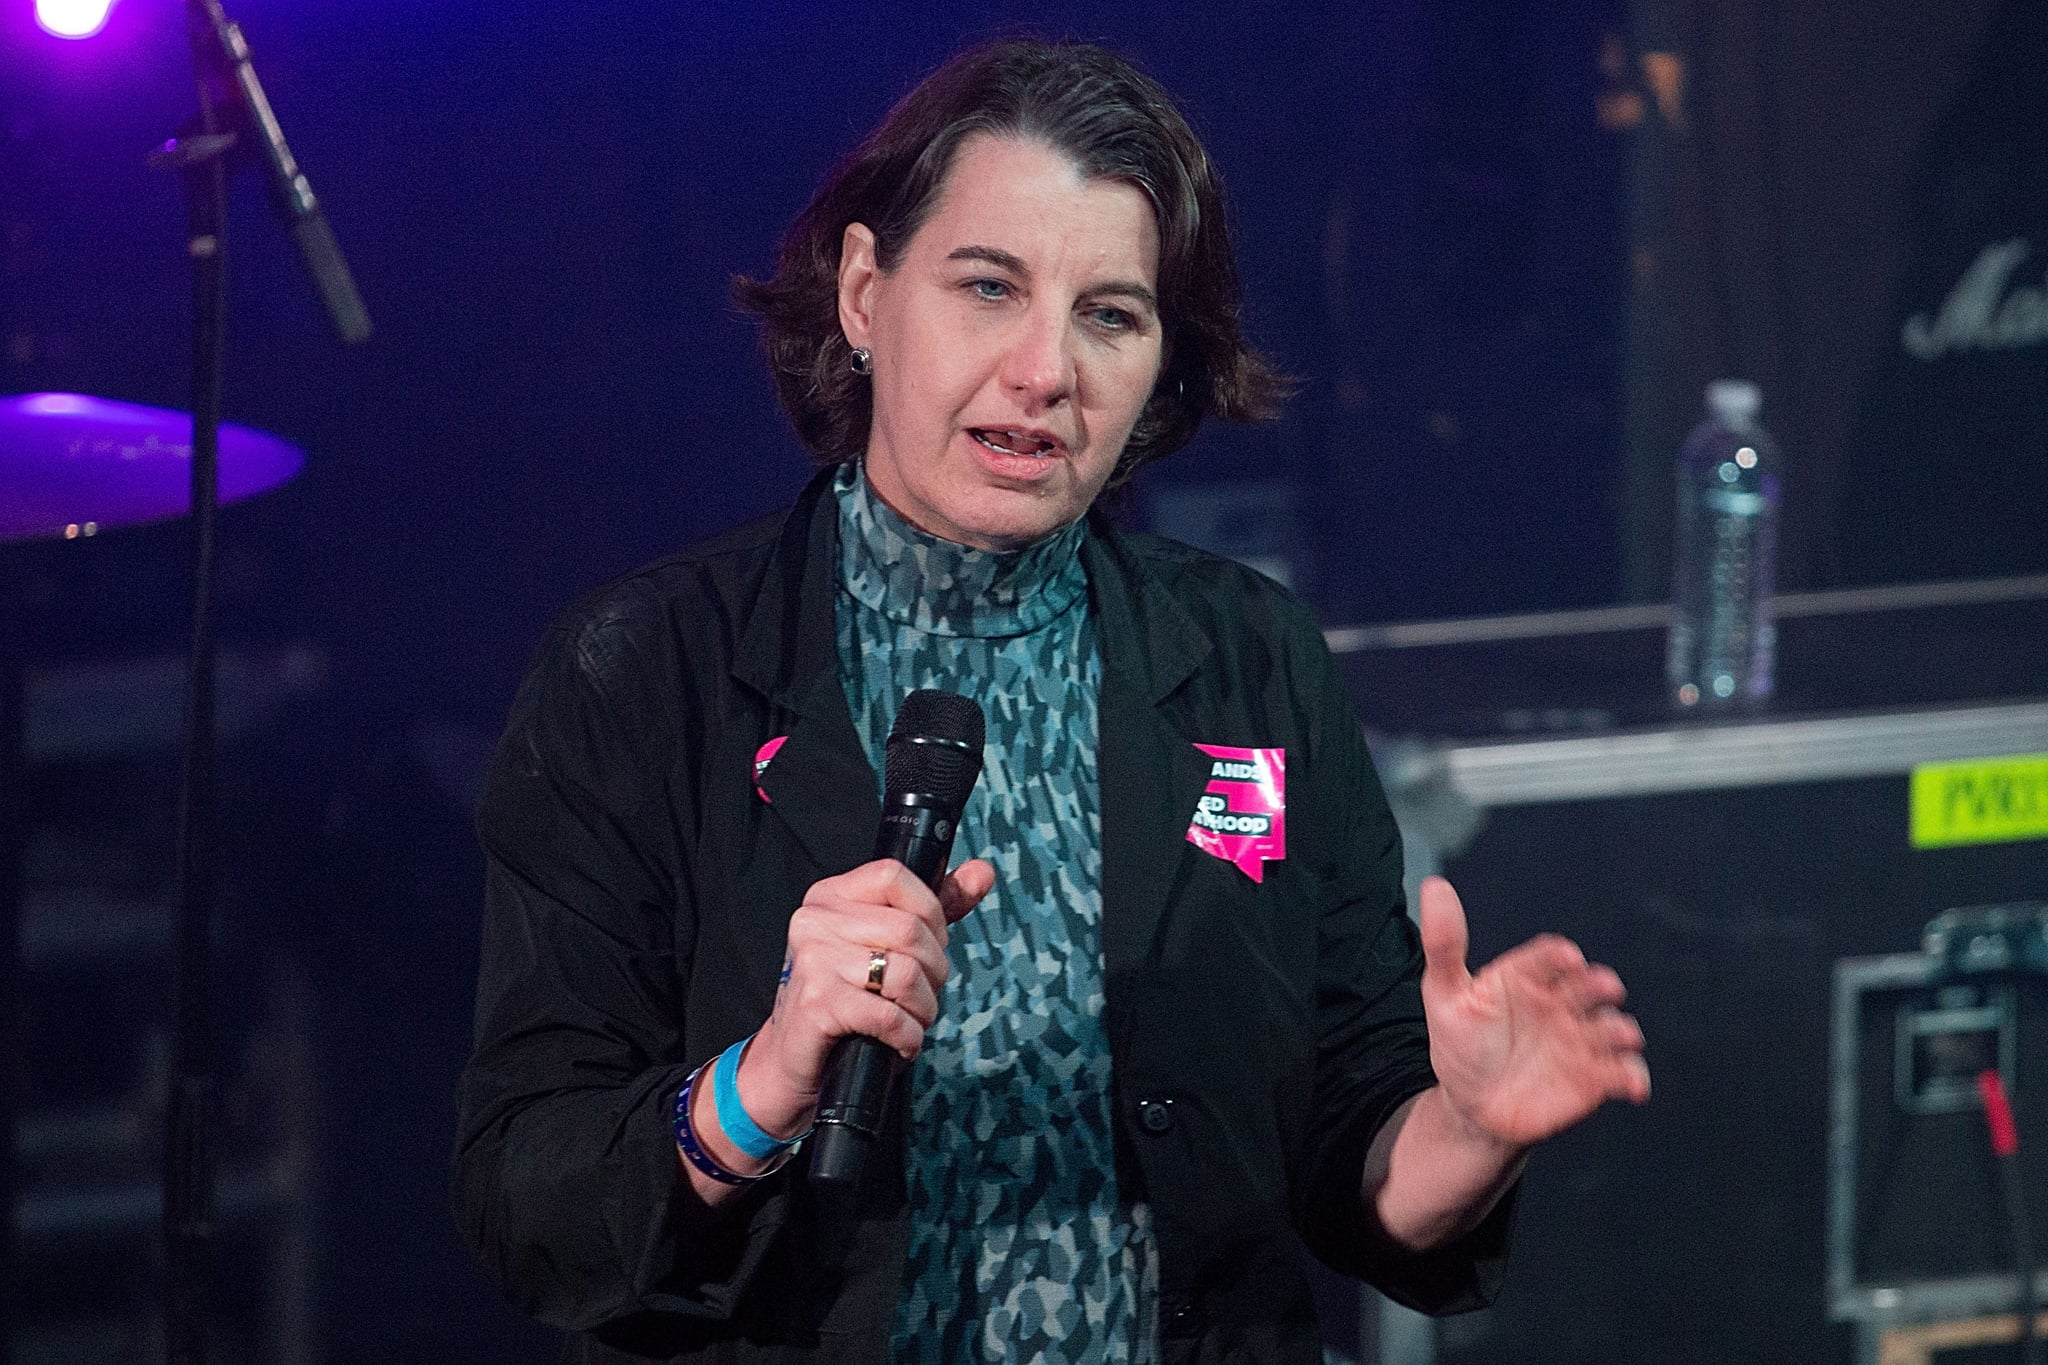 AUSTIN, TX - MARCH 12:  Dawn Laguens speaks onstage during Never Going Back Presented by Tumblr in support of Planned Parenthood at Mohawk on March 12, 2017 in Austin, Texas.  (Photo by Rick Kern/Getty Images for Tumblr)